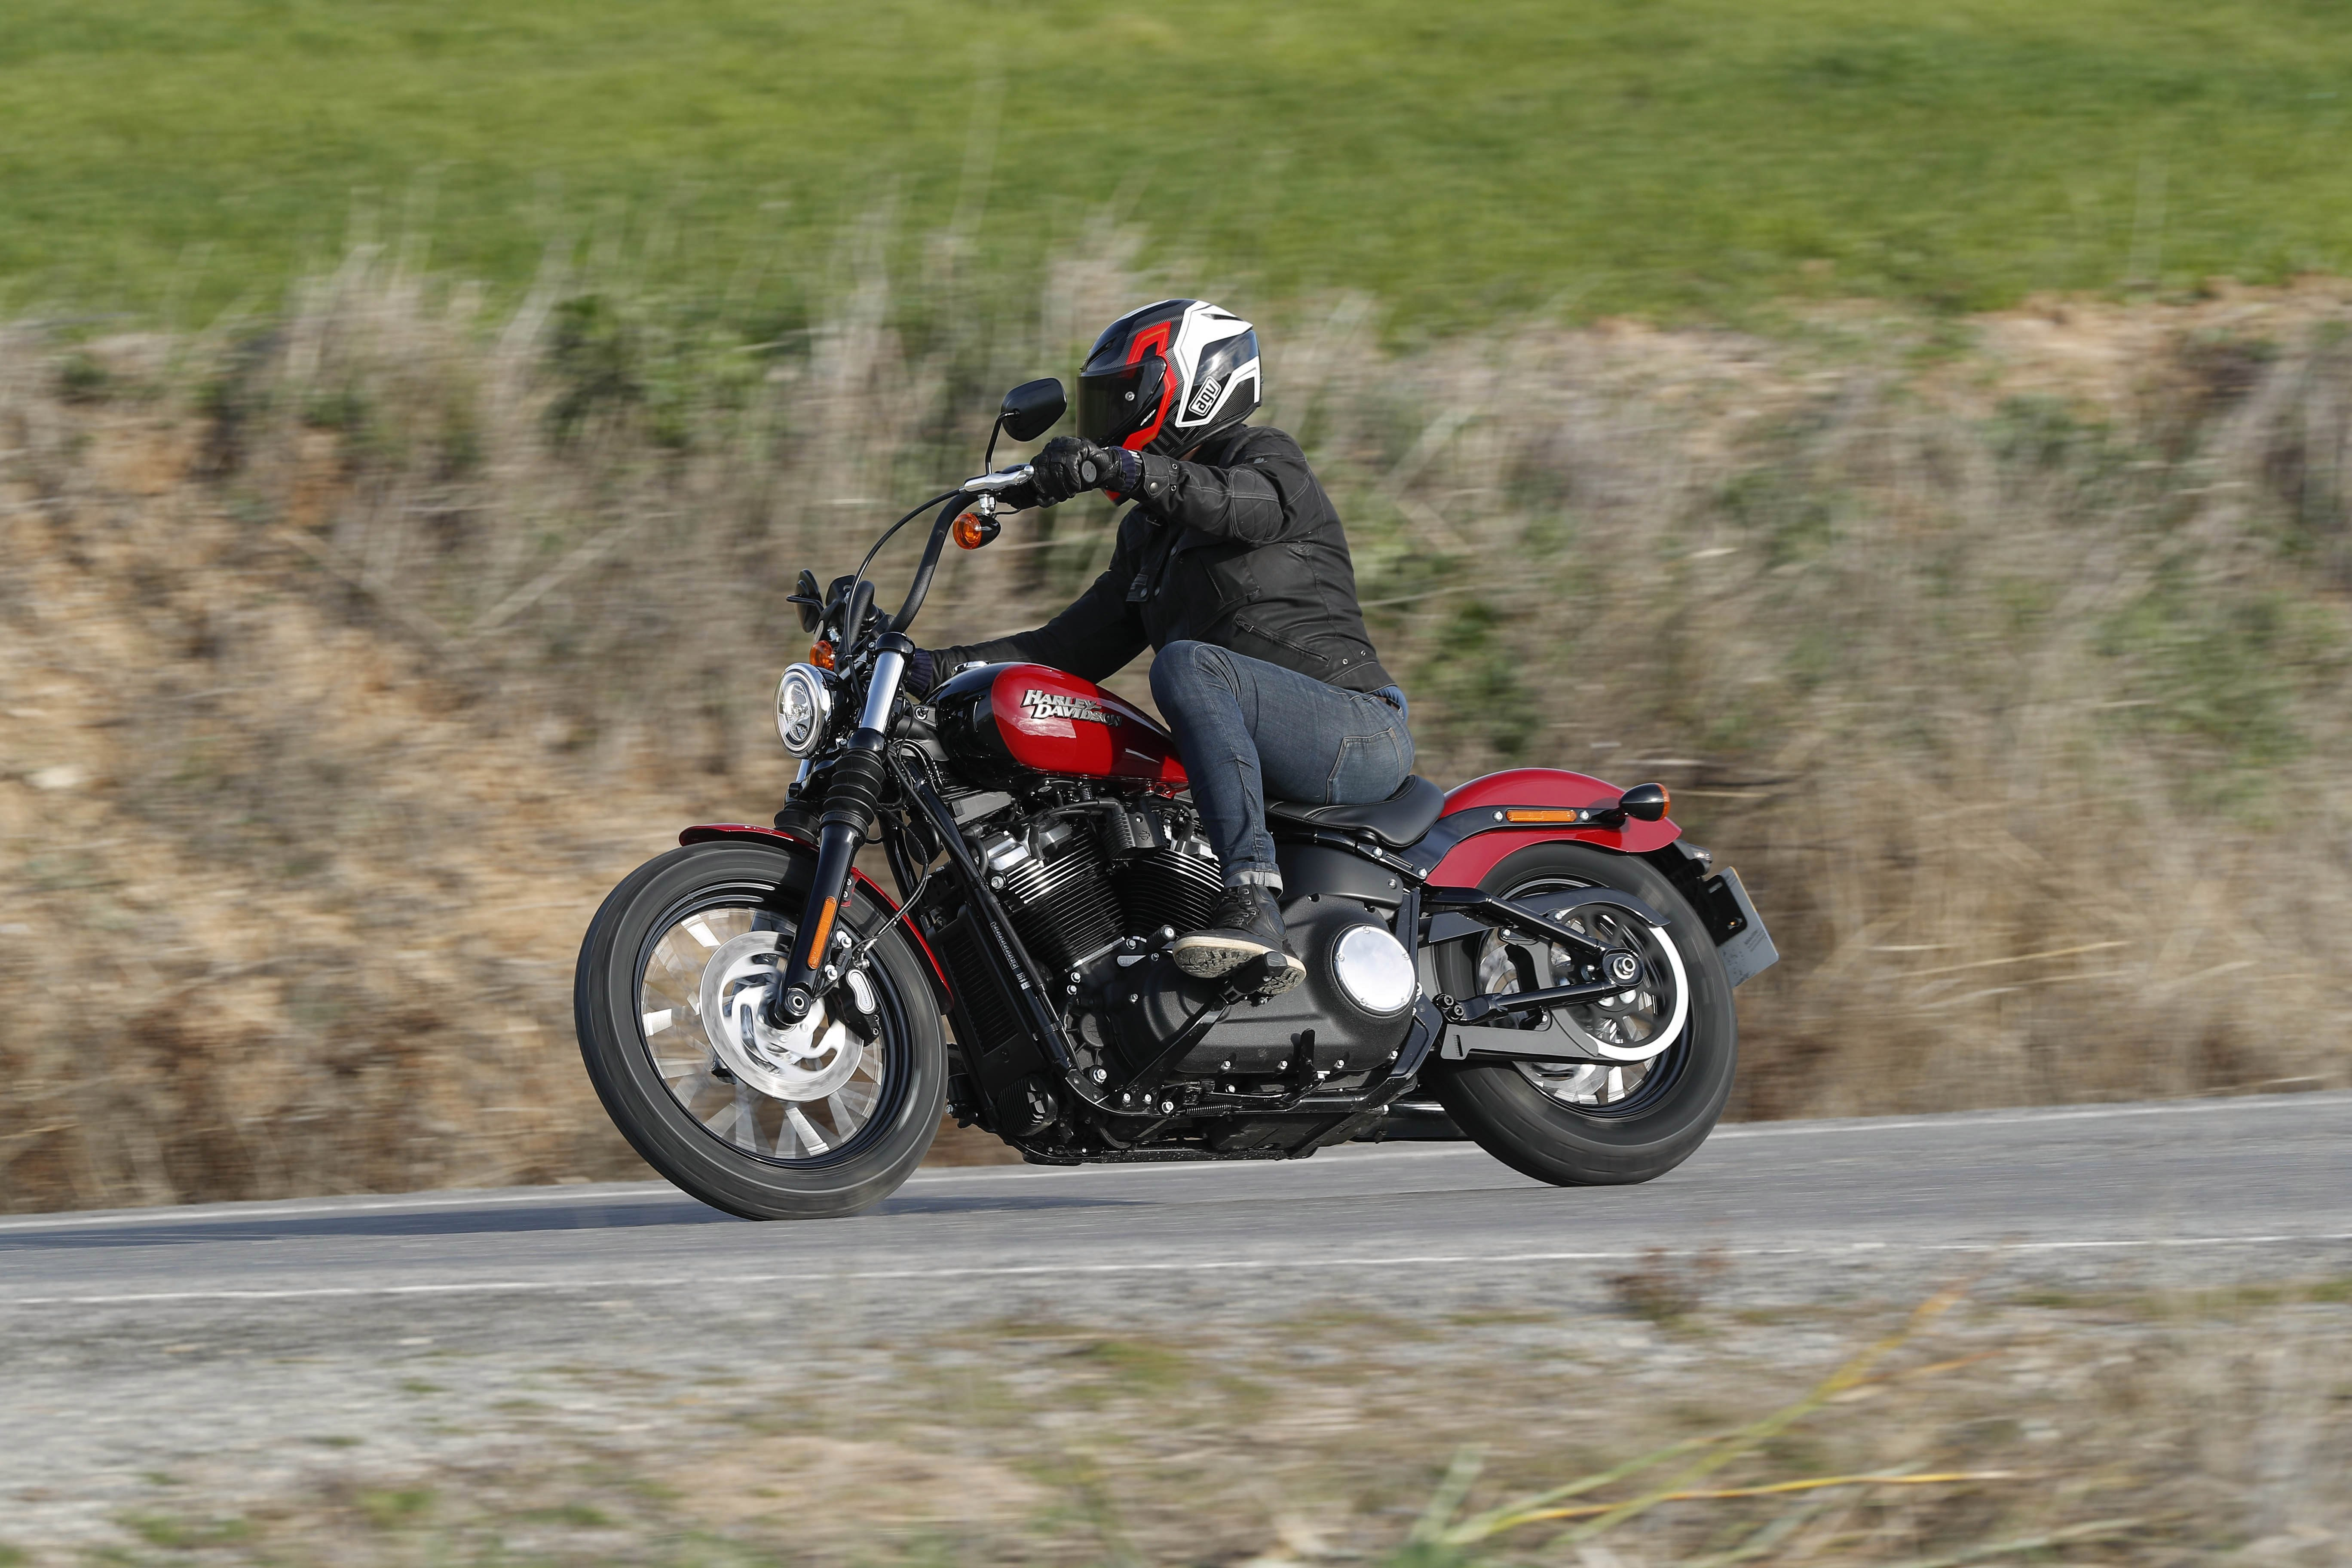 The new Harley-Davidson Street Bob is practical and you don't need to rob a bank to own one